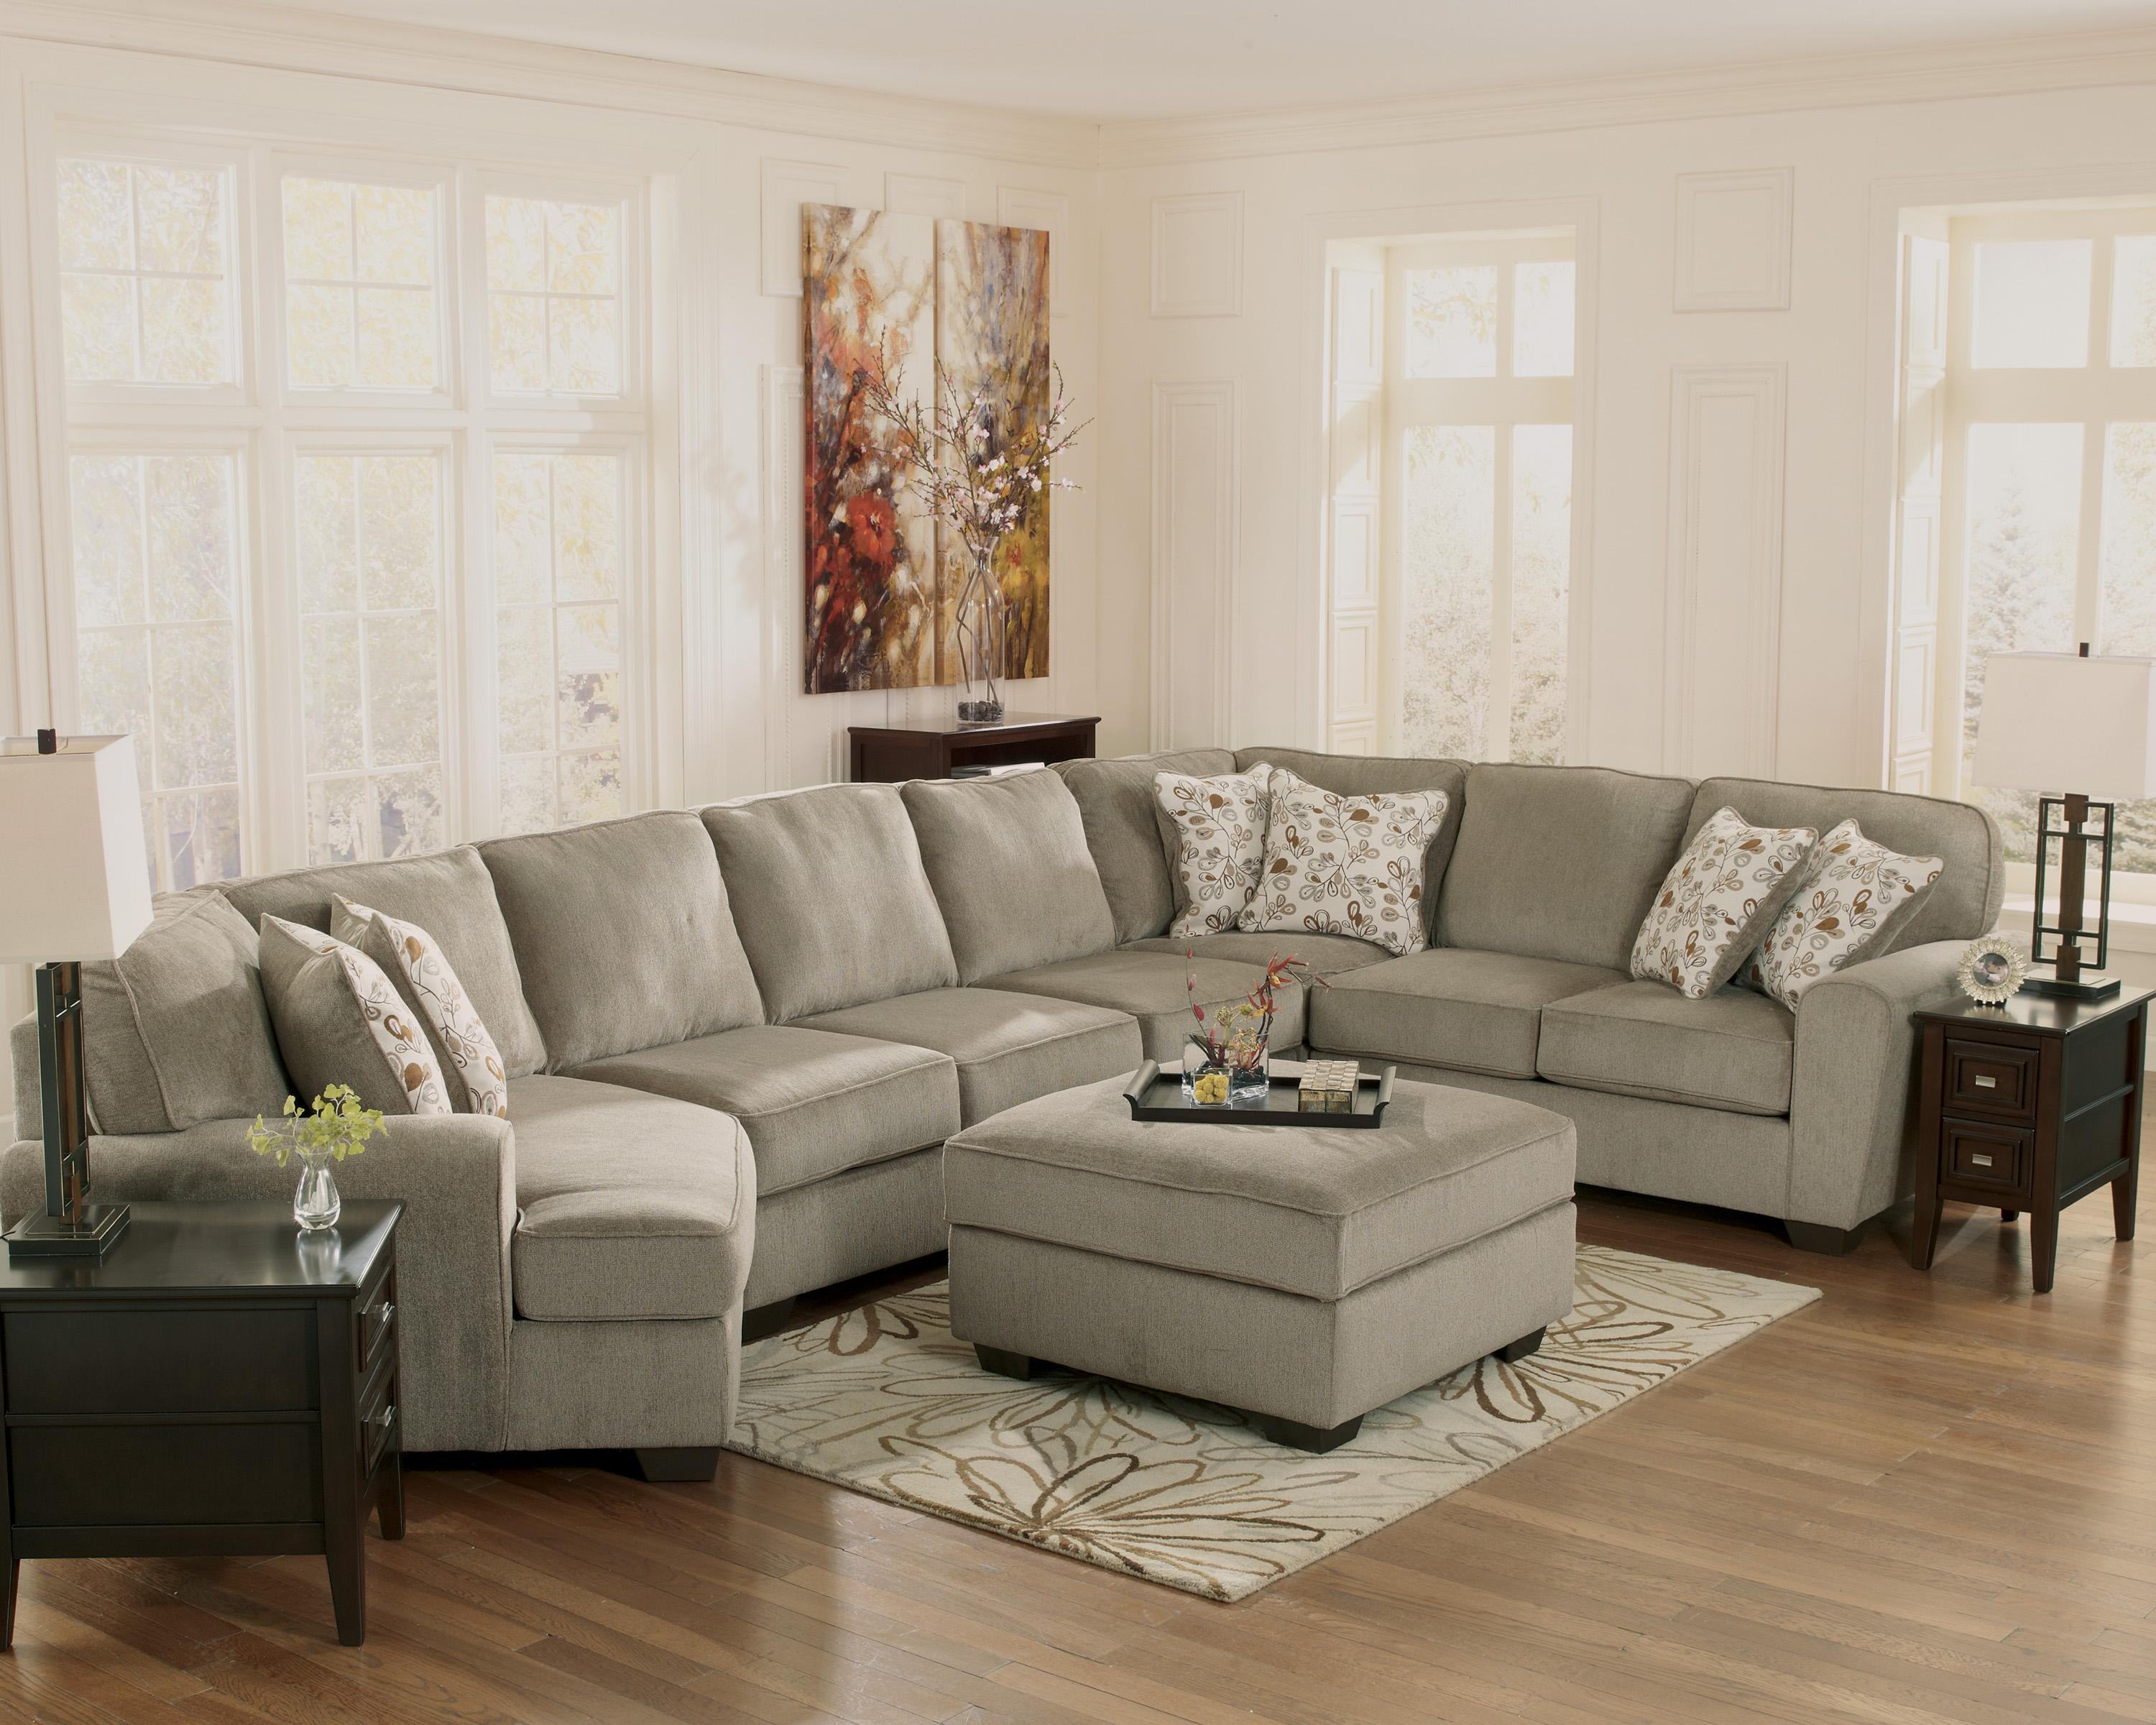 Ashley Furniture Patola Park Patina 4 Piece Sectional With Left Cuddler Zak 39 S Fine Furniture